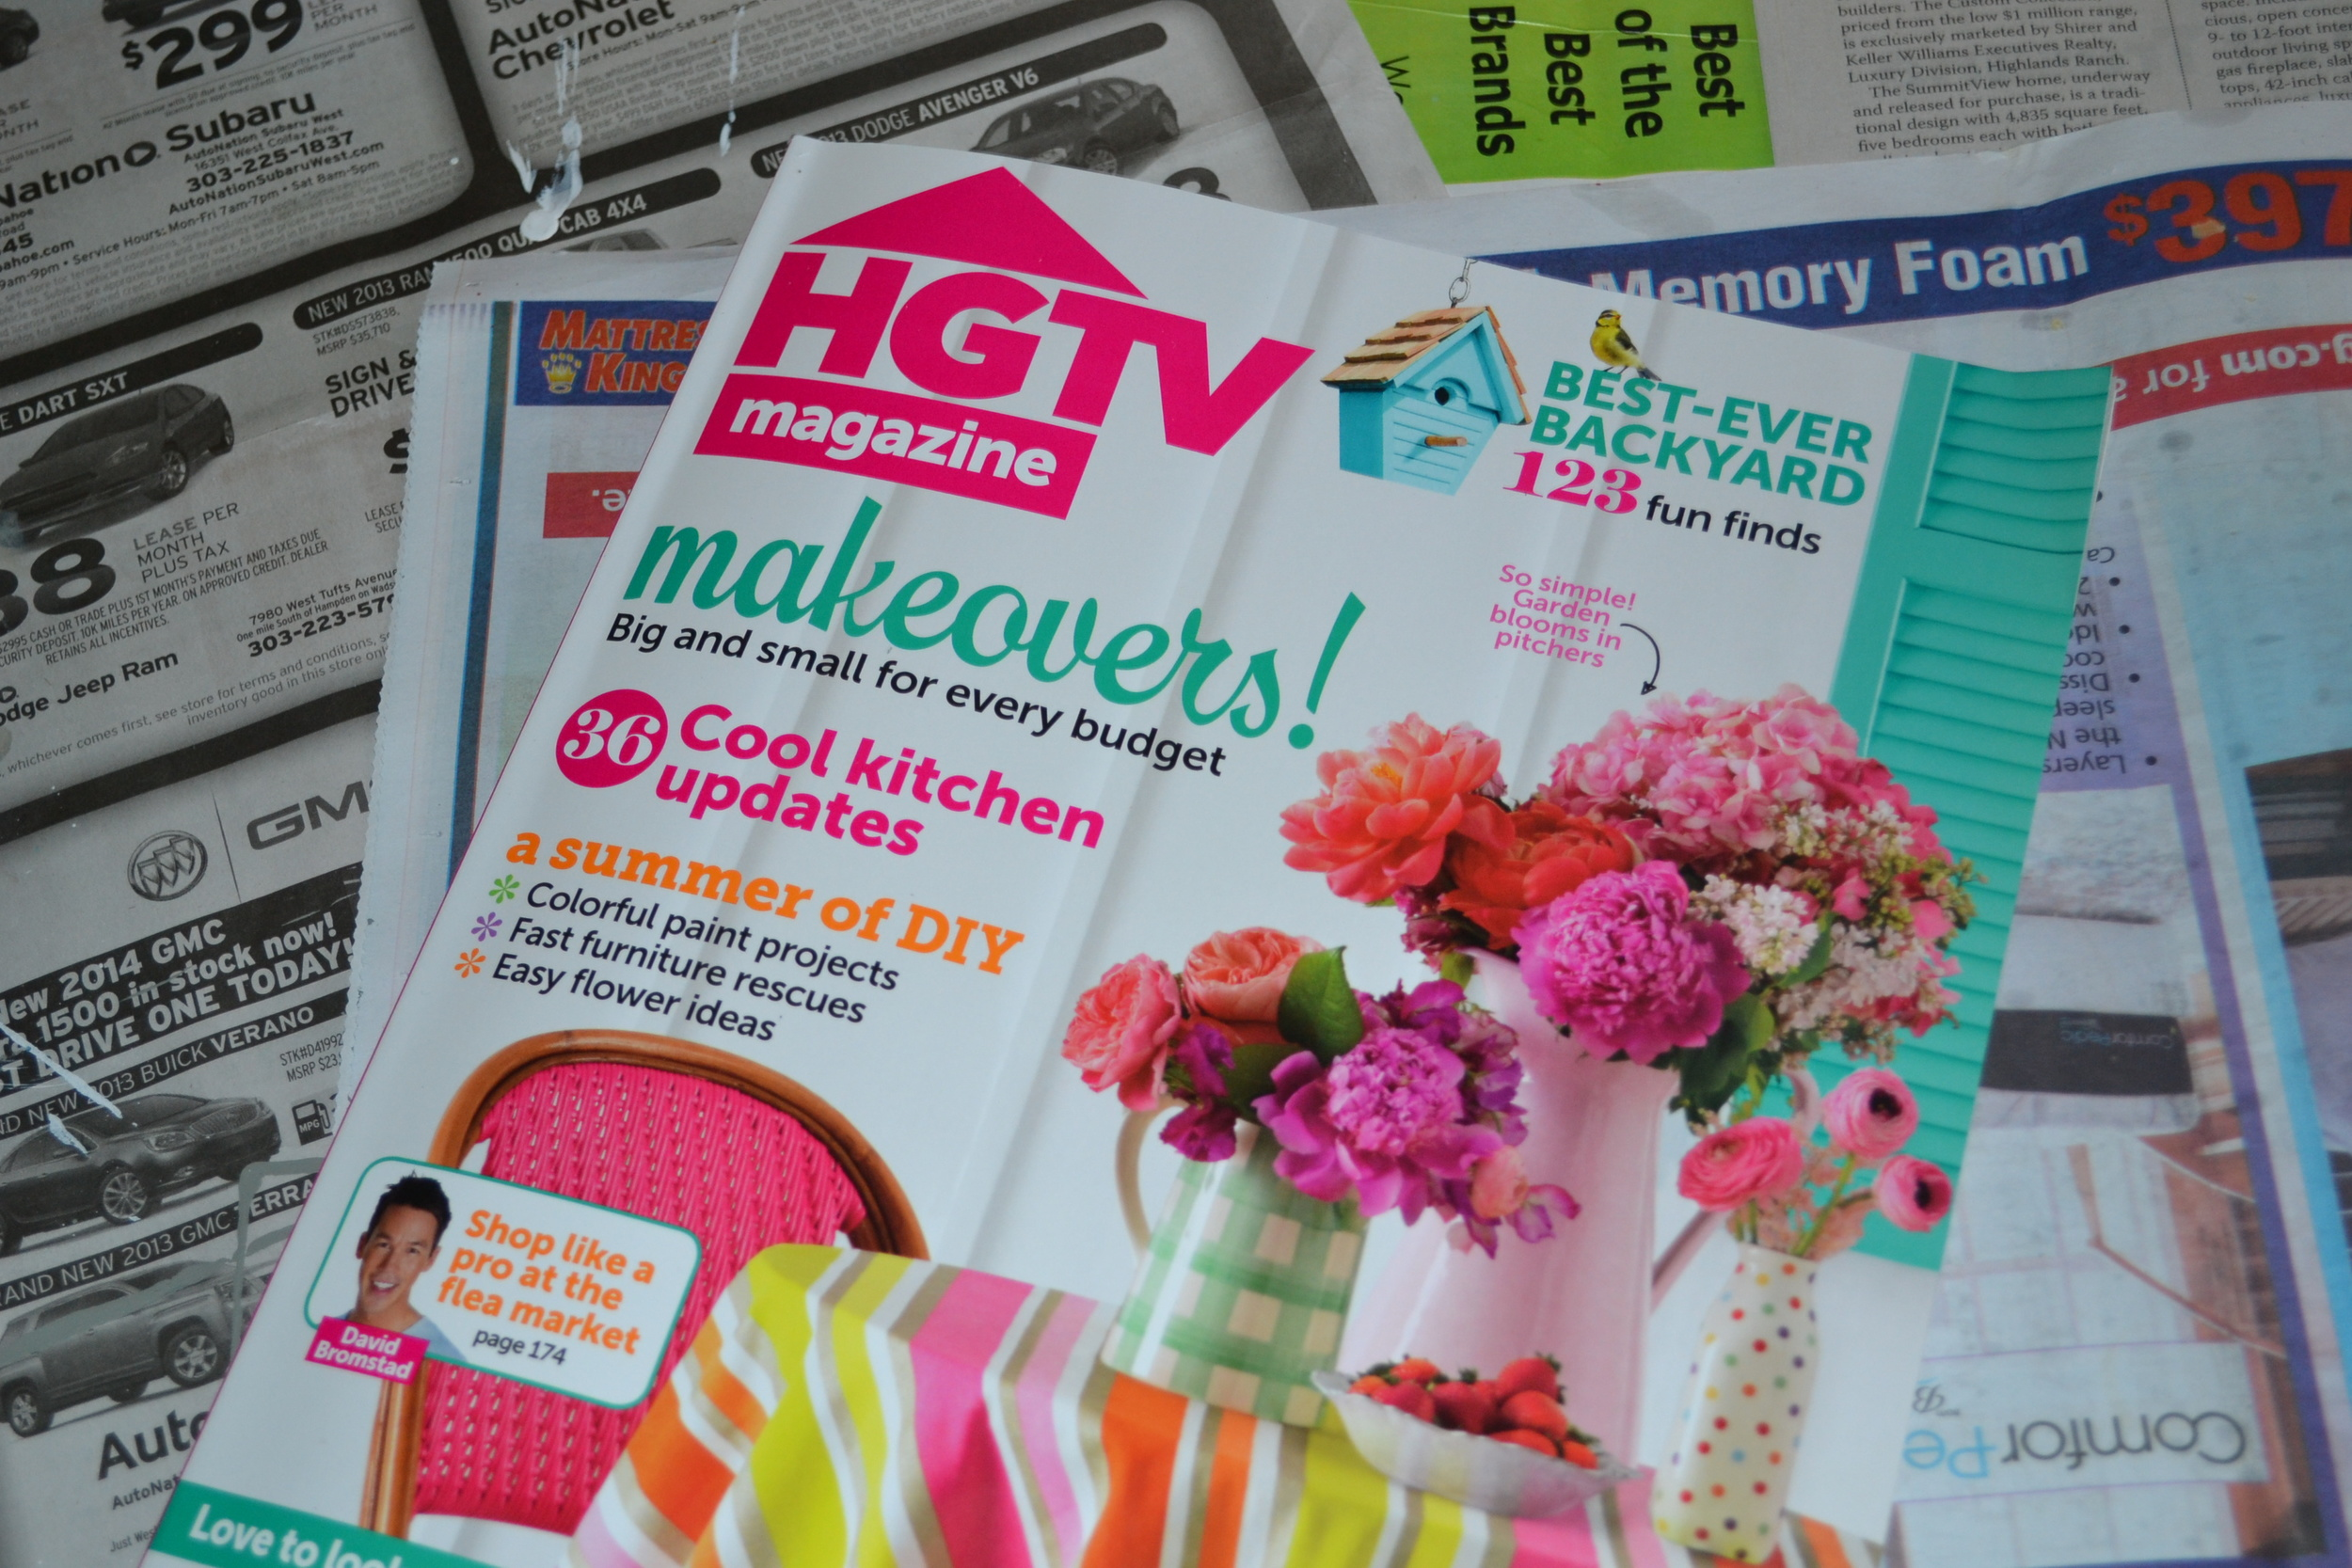 A picture of HGTV magazine